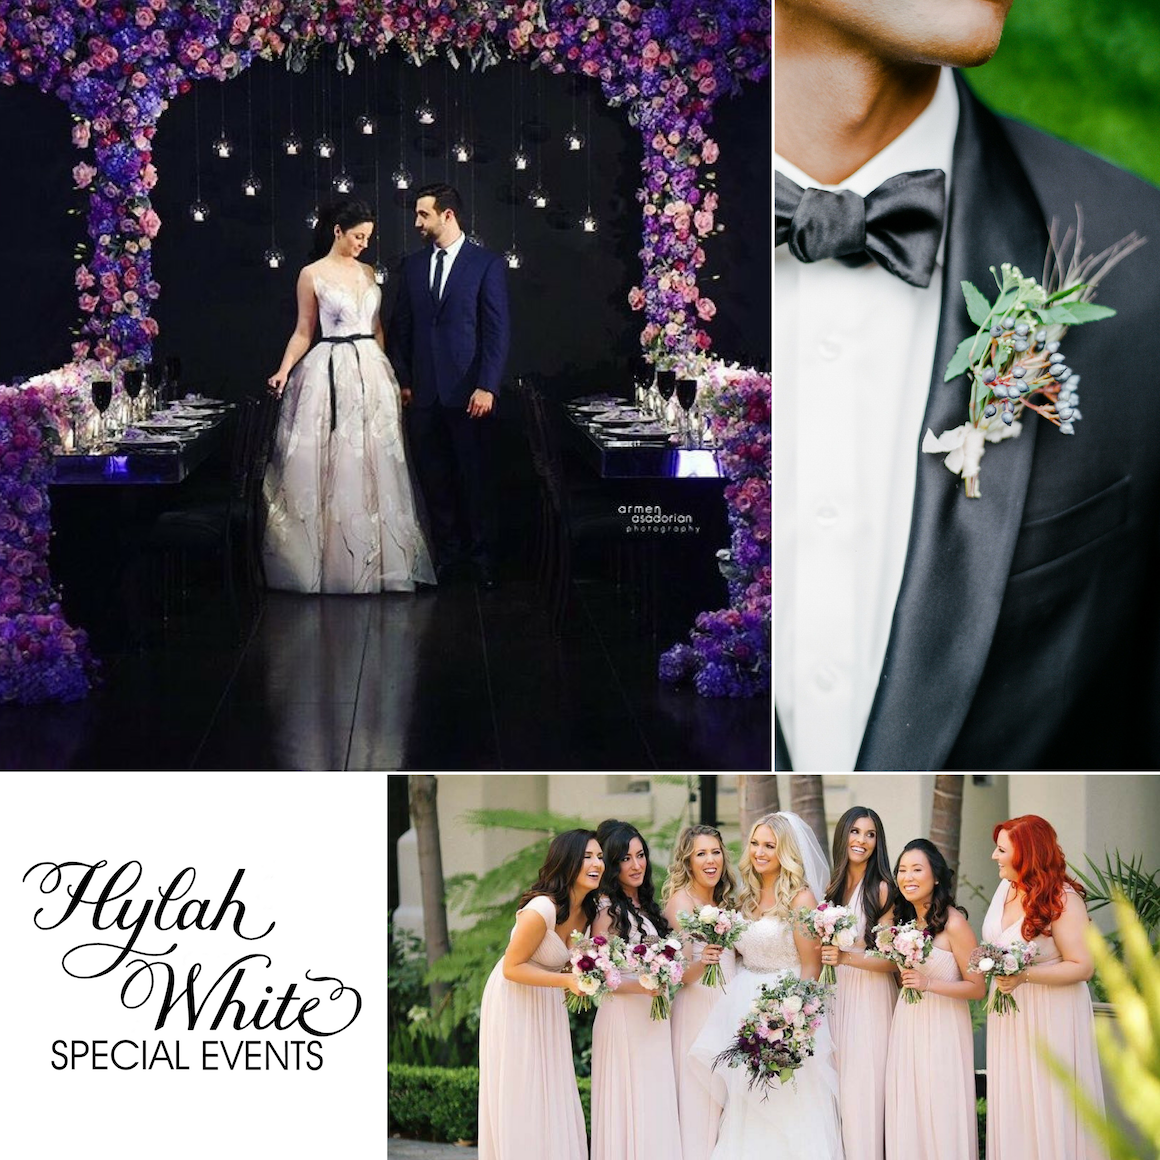 Wedding Flowers, Hylah White Special Events